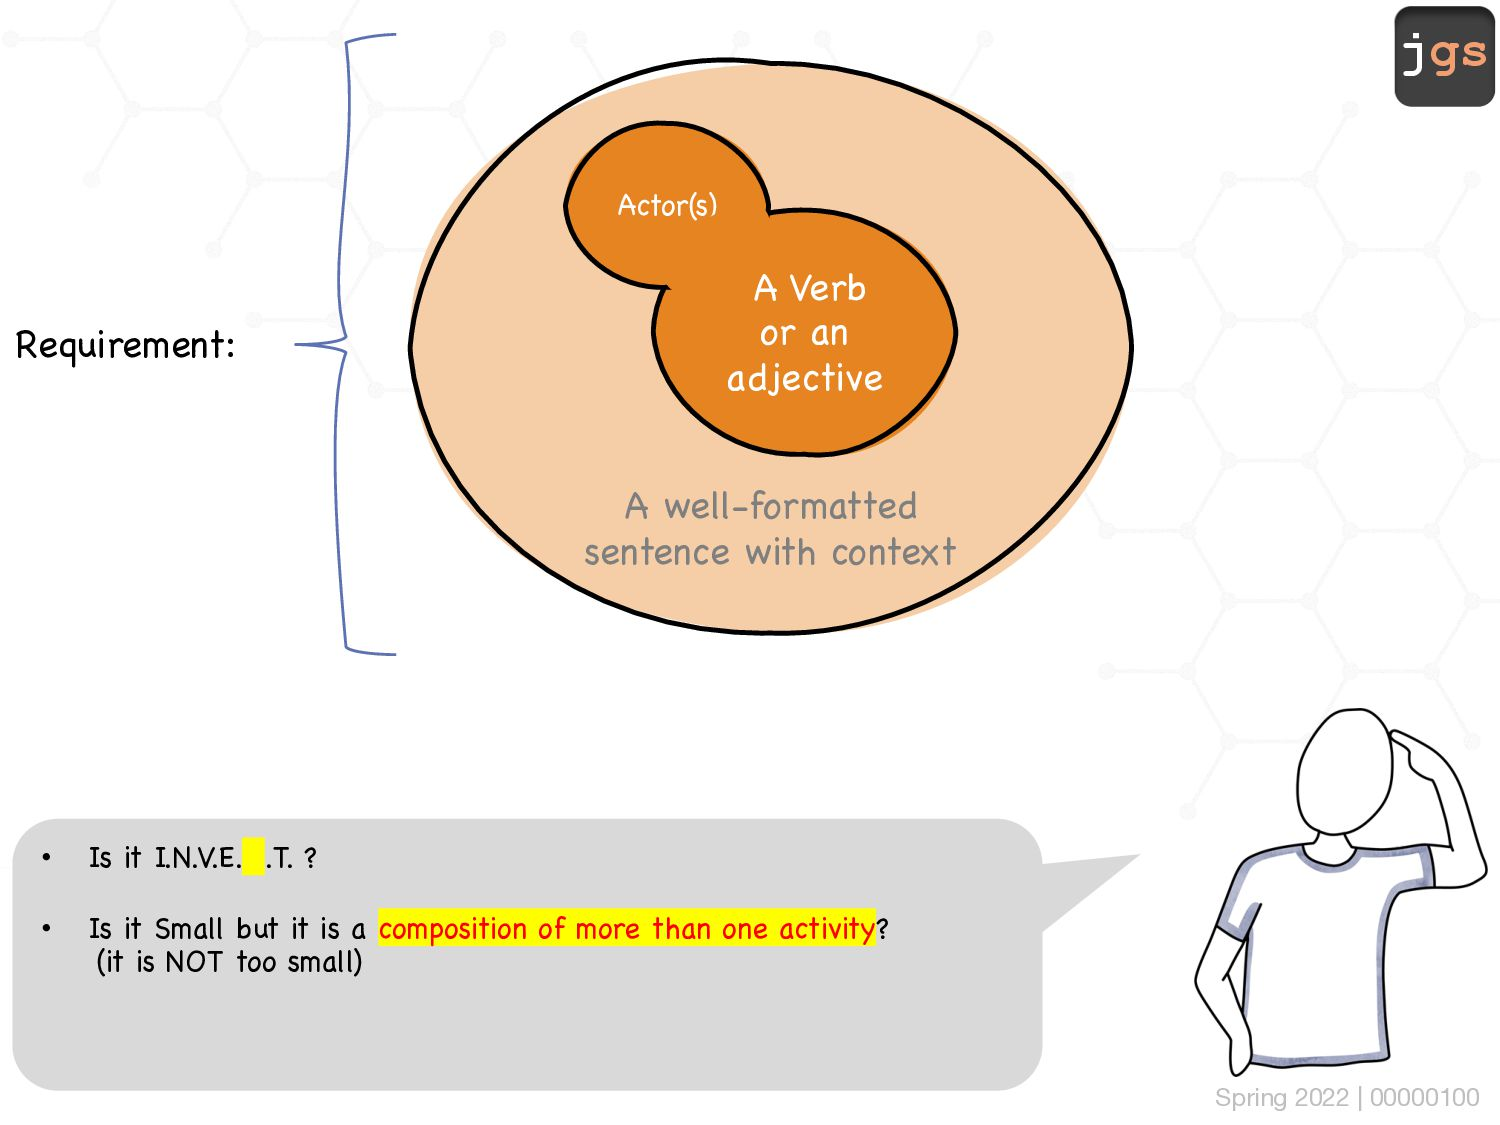 jgs Writing Requirements